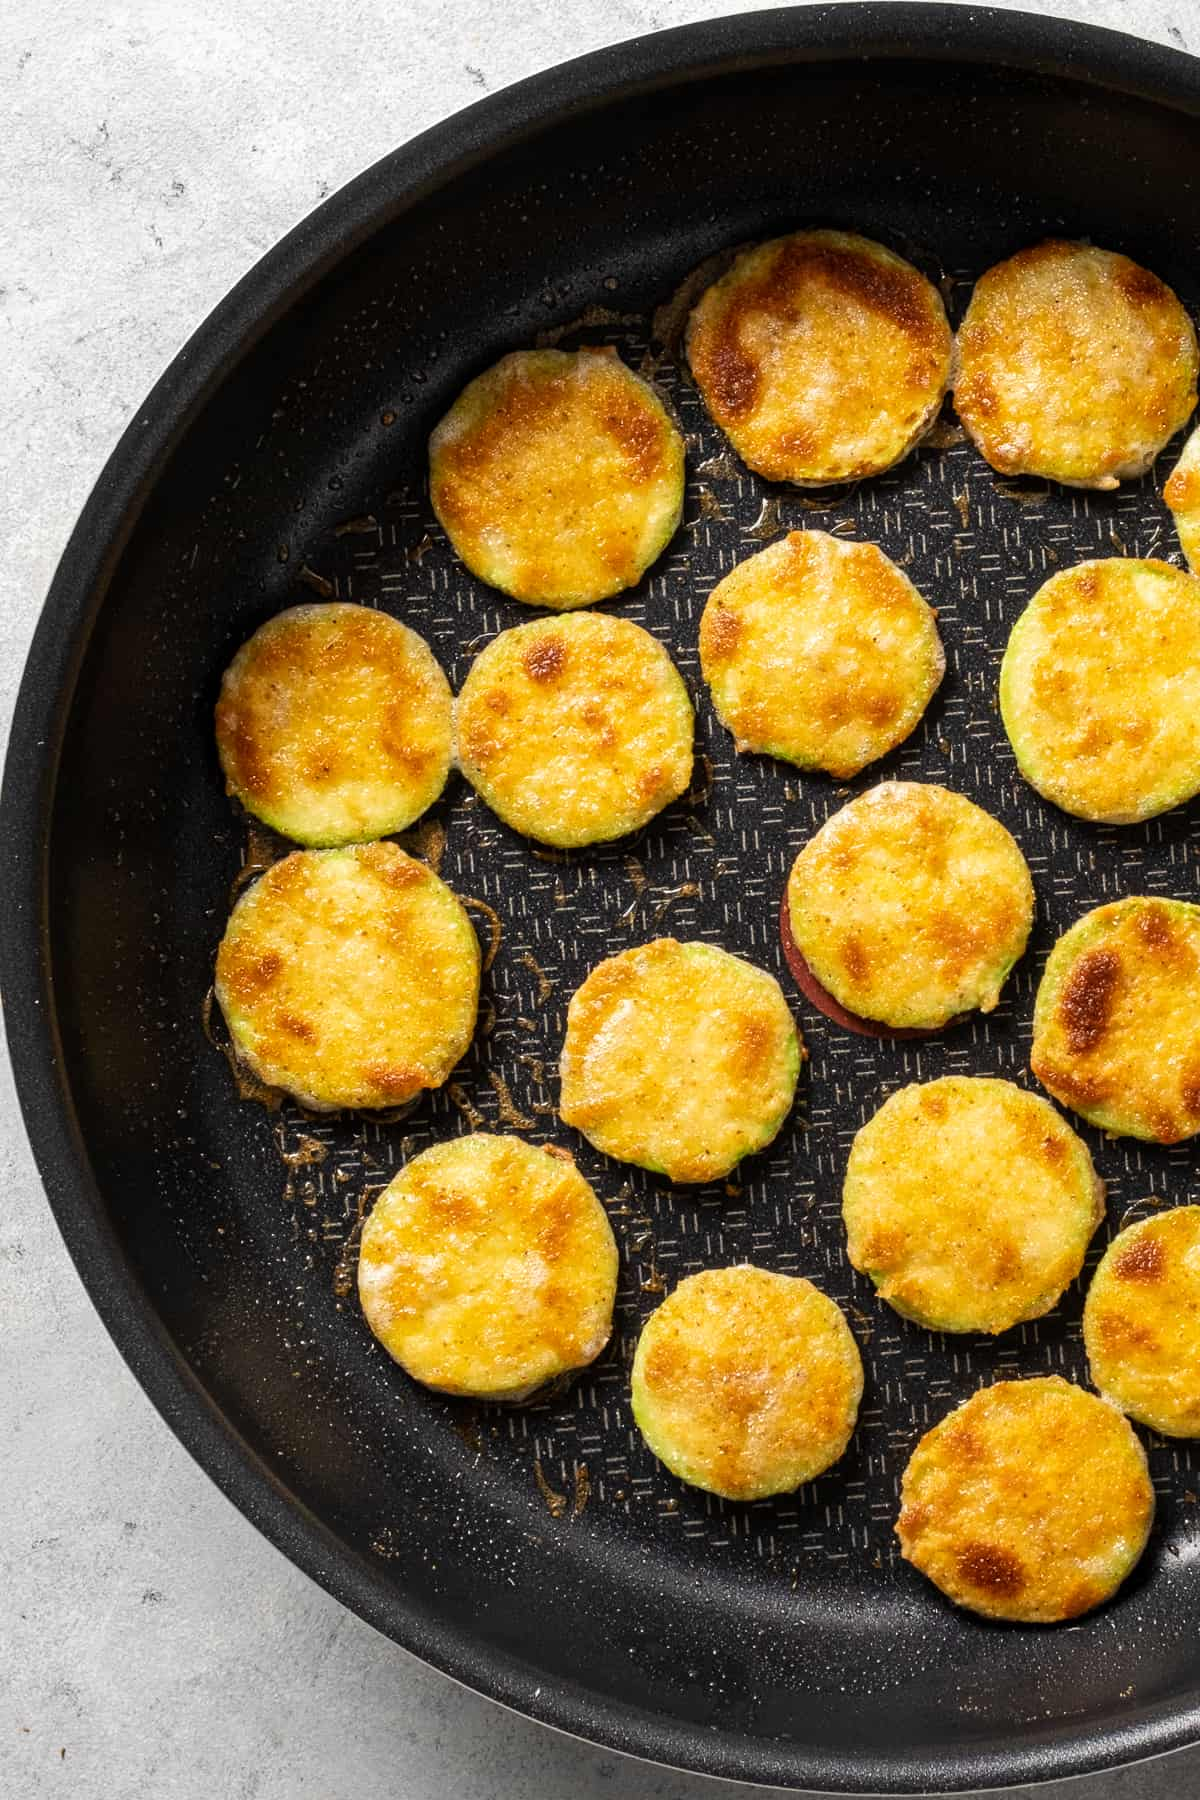 Breaded zucchini slices fried in a non-stick pan.